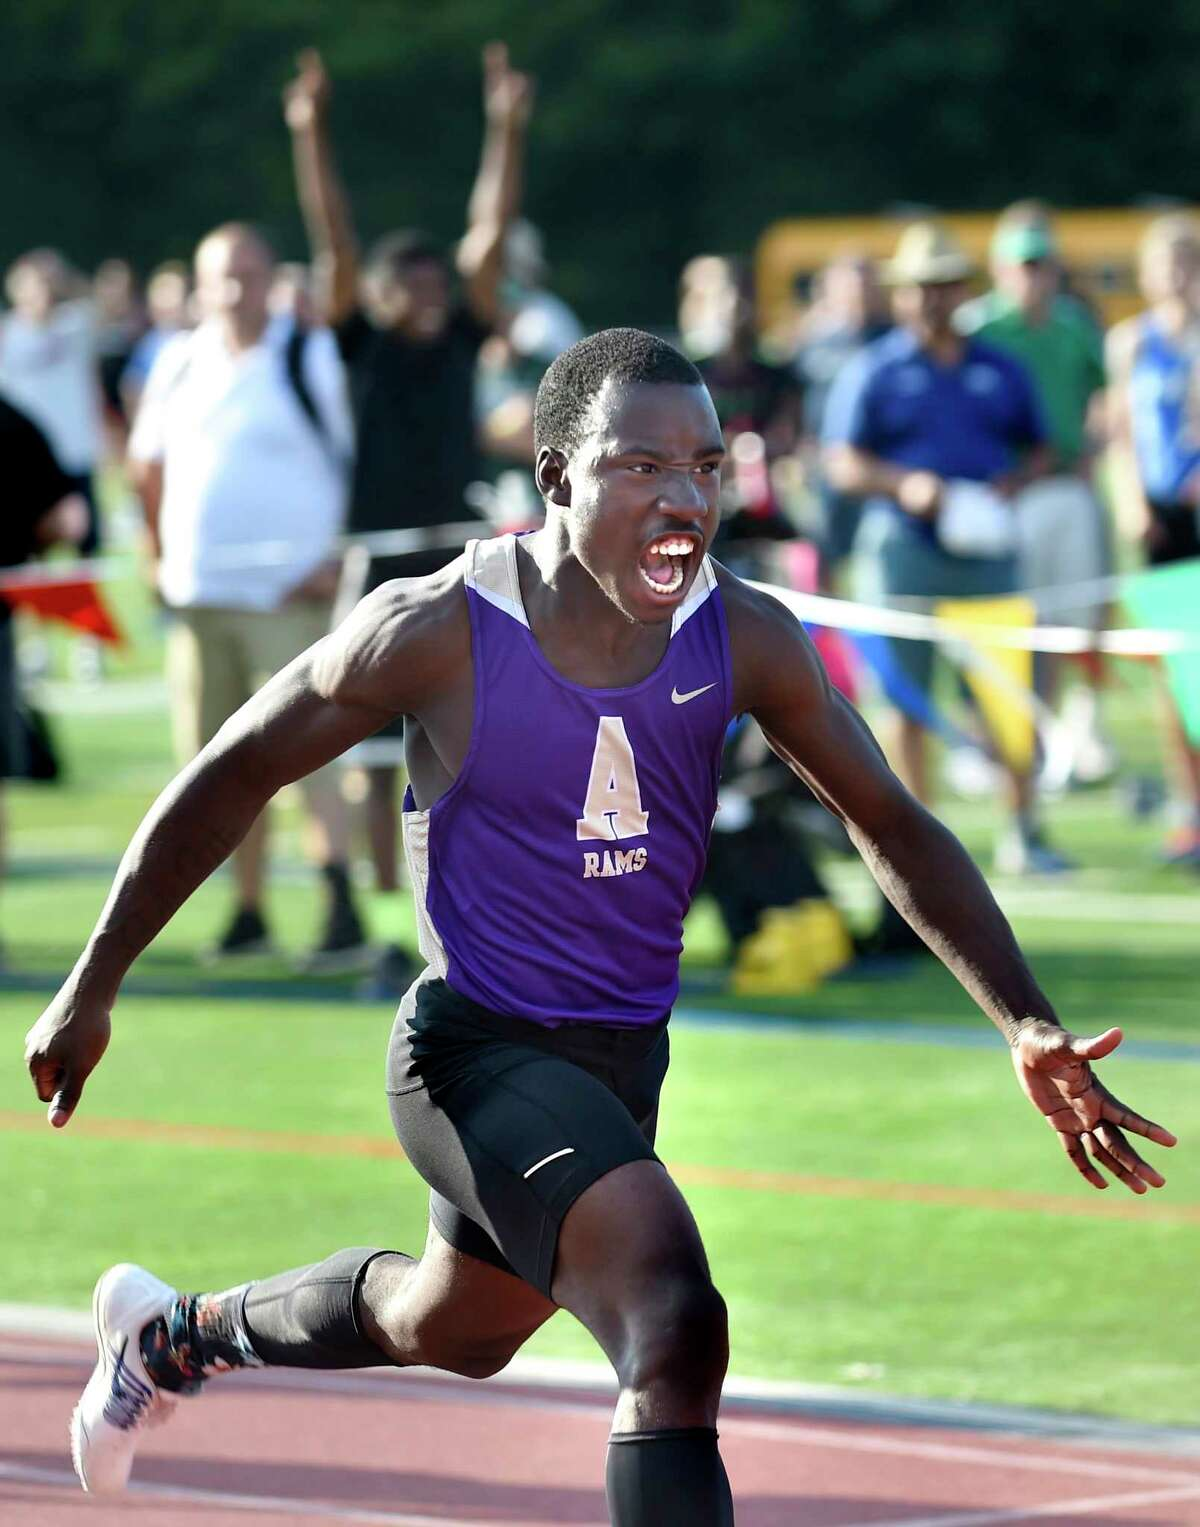 Amsterdam's Kevon Boucaud takes first in the Division I 100-meter dash and celebrates his 17th birthday during the state qualifier meet on Friday, June 3, 2016, at Shenendehowa High in Clifton Park, N.Y. (Cindy Schultz / Times Union)